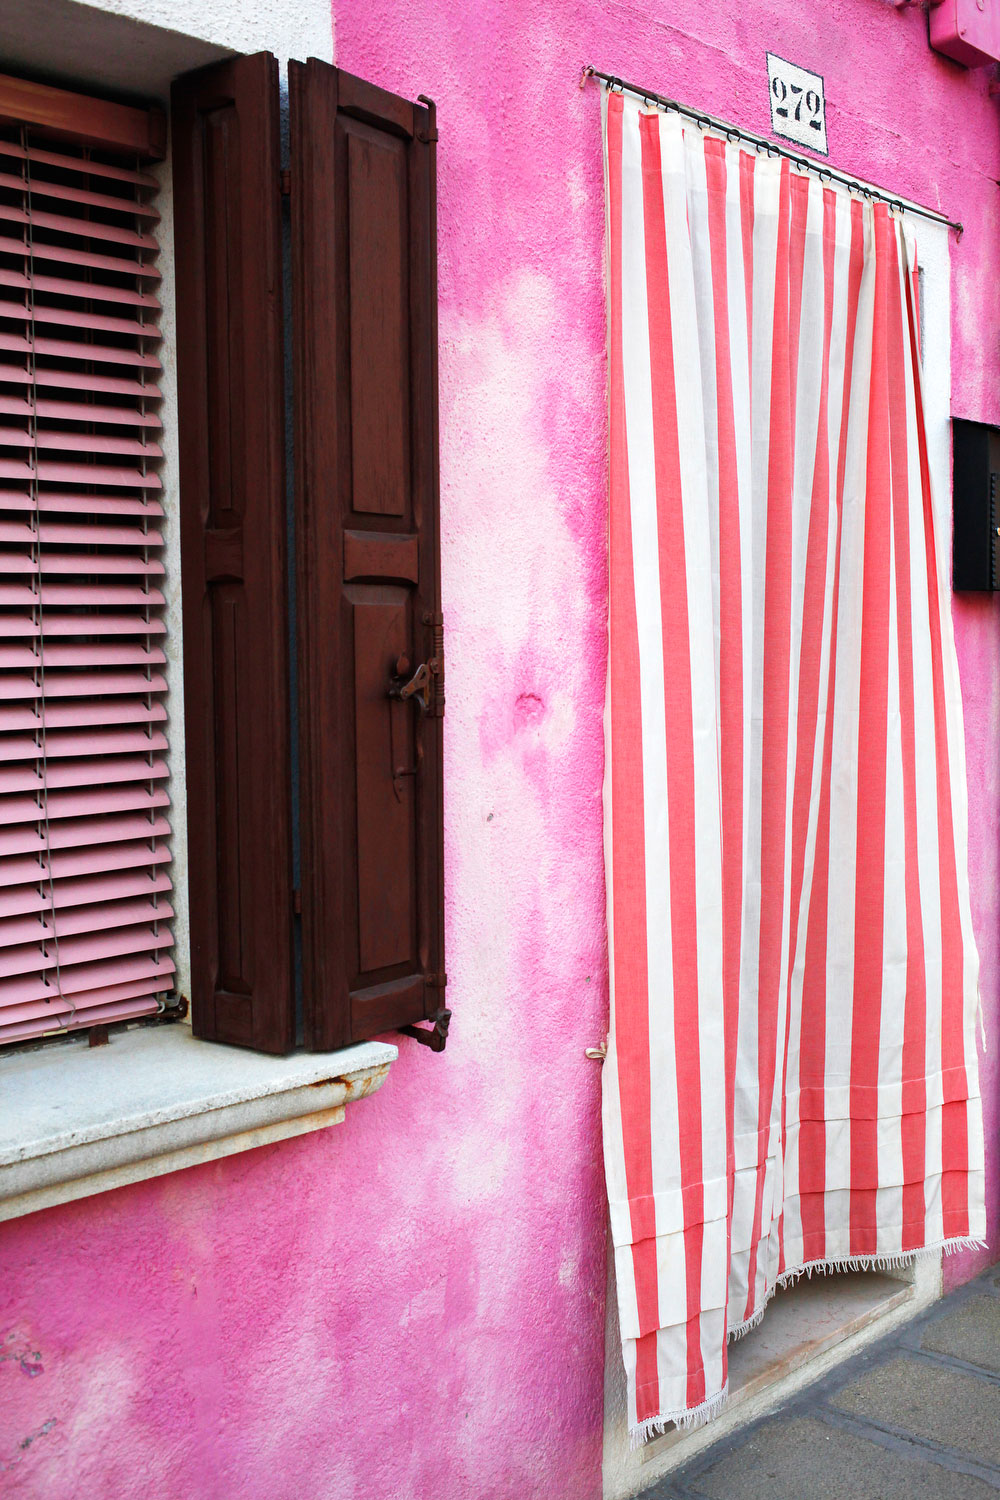 Pink walls in Burano, Italy | Freckle & Fair